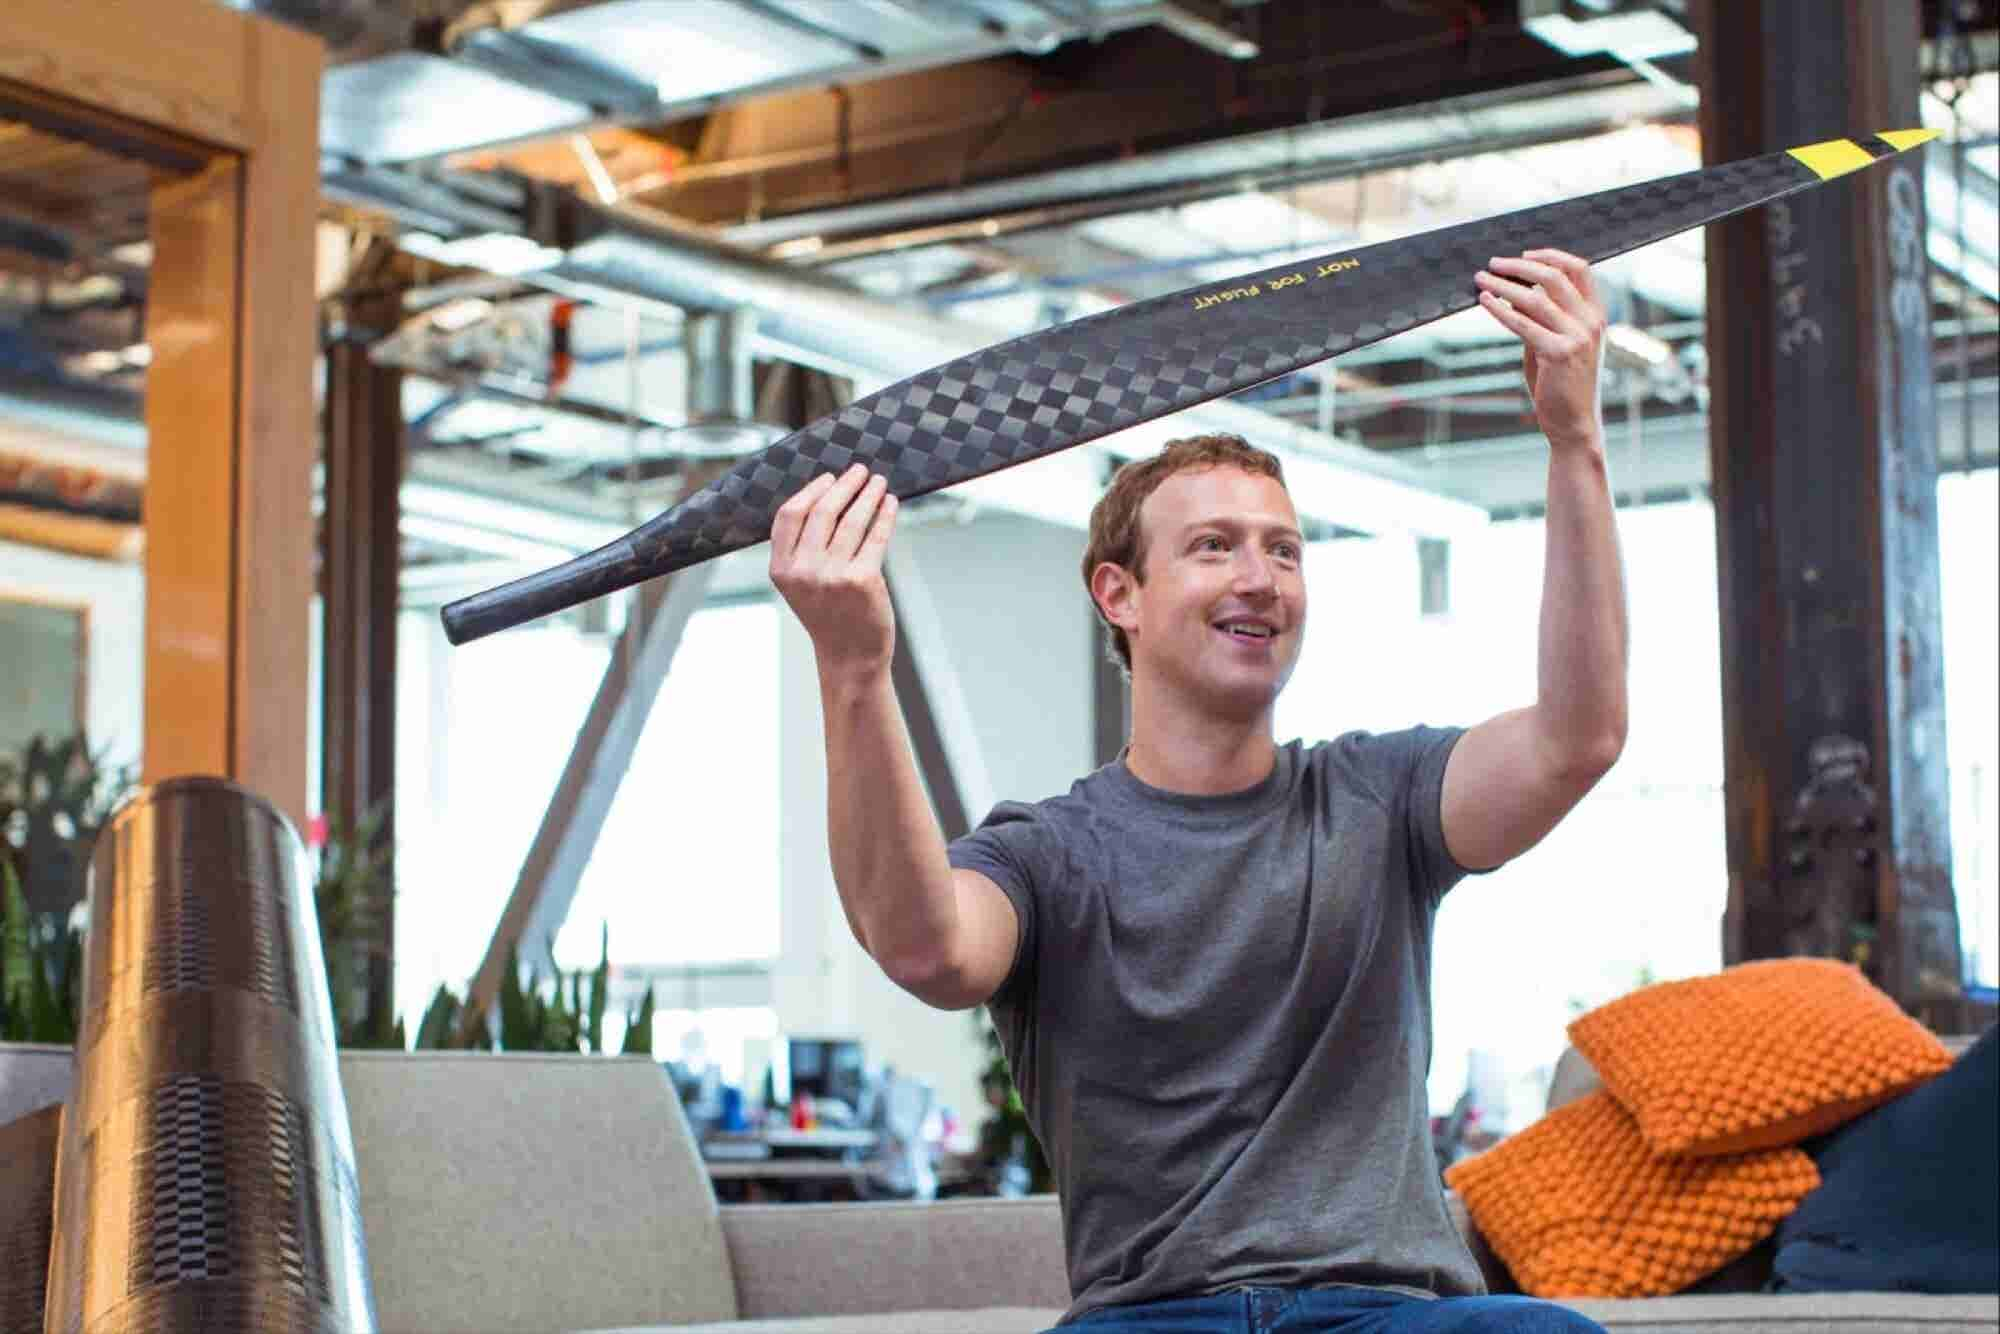 Mark Zuckerberg's Quest to Kill the Smartphone Could Have Some Scary Side Effects